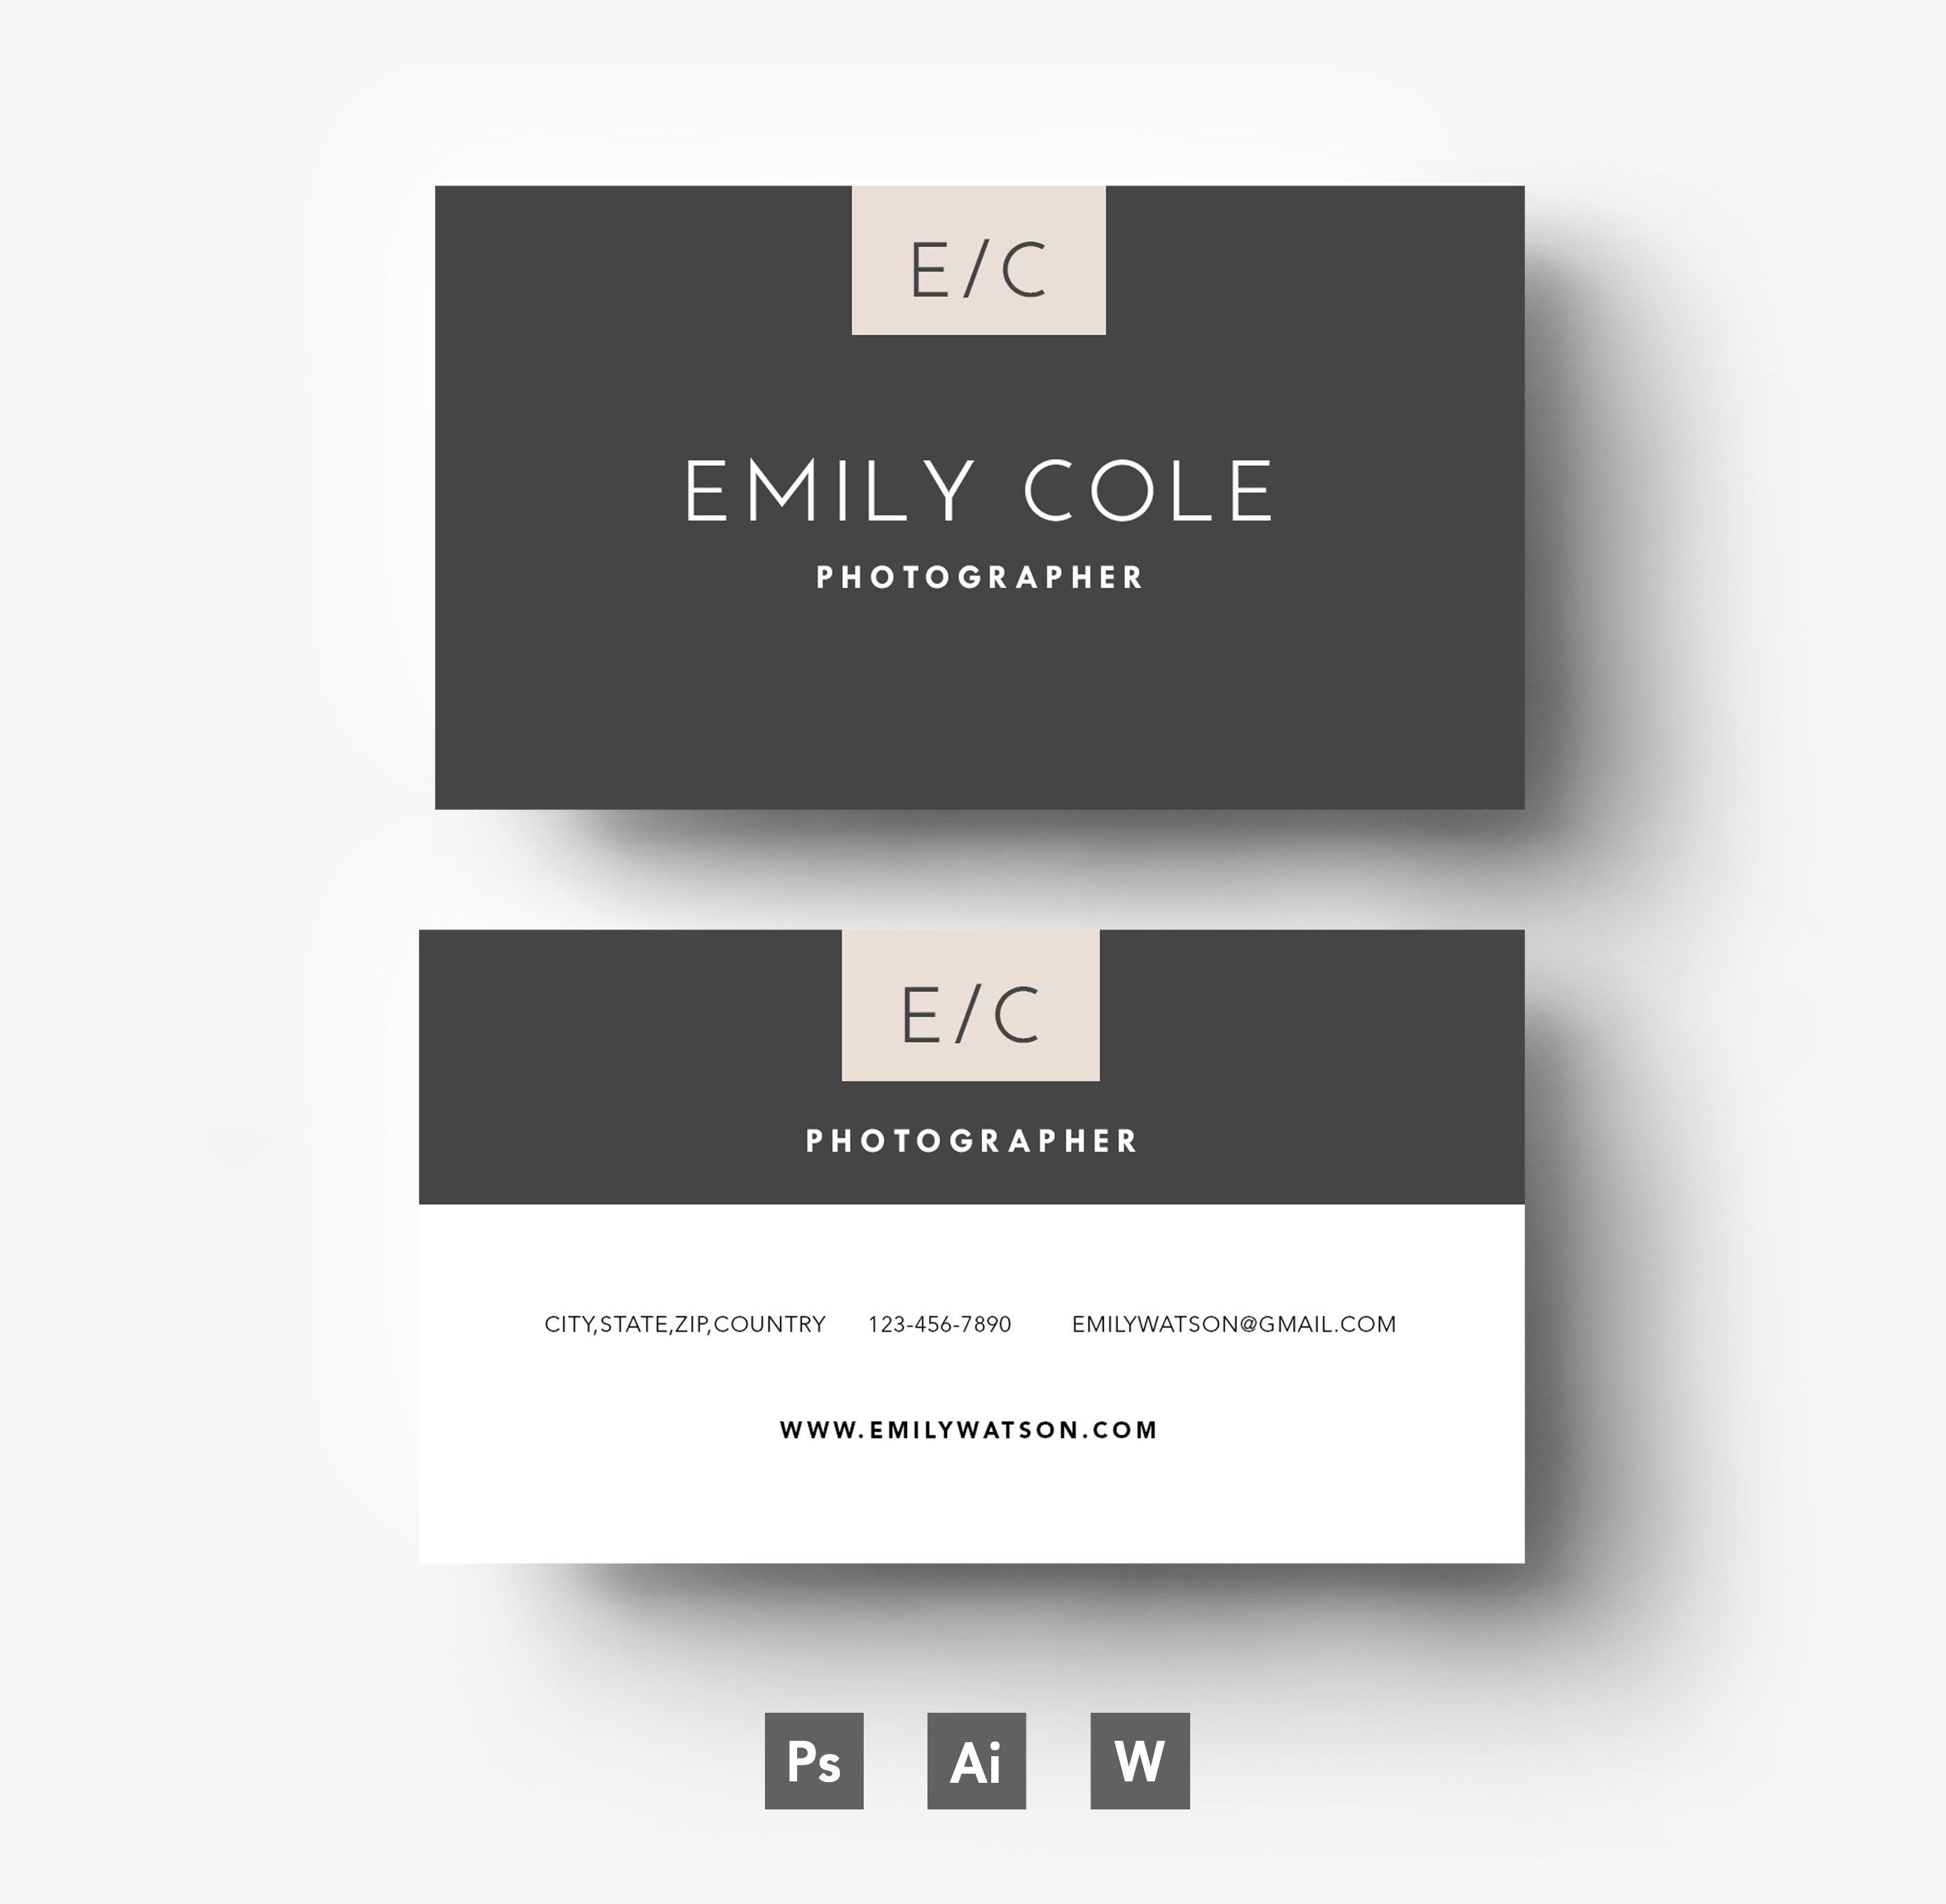 Stylish two side business card template | 00 Graphics Design